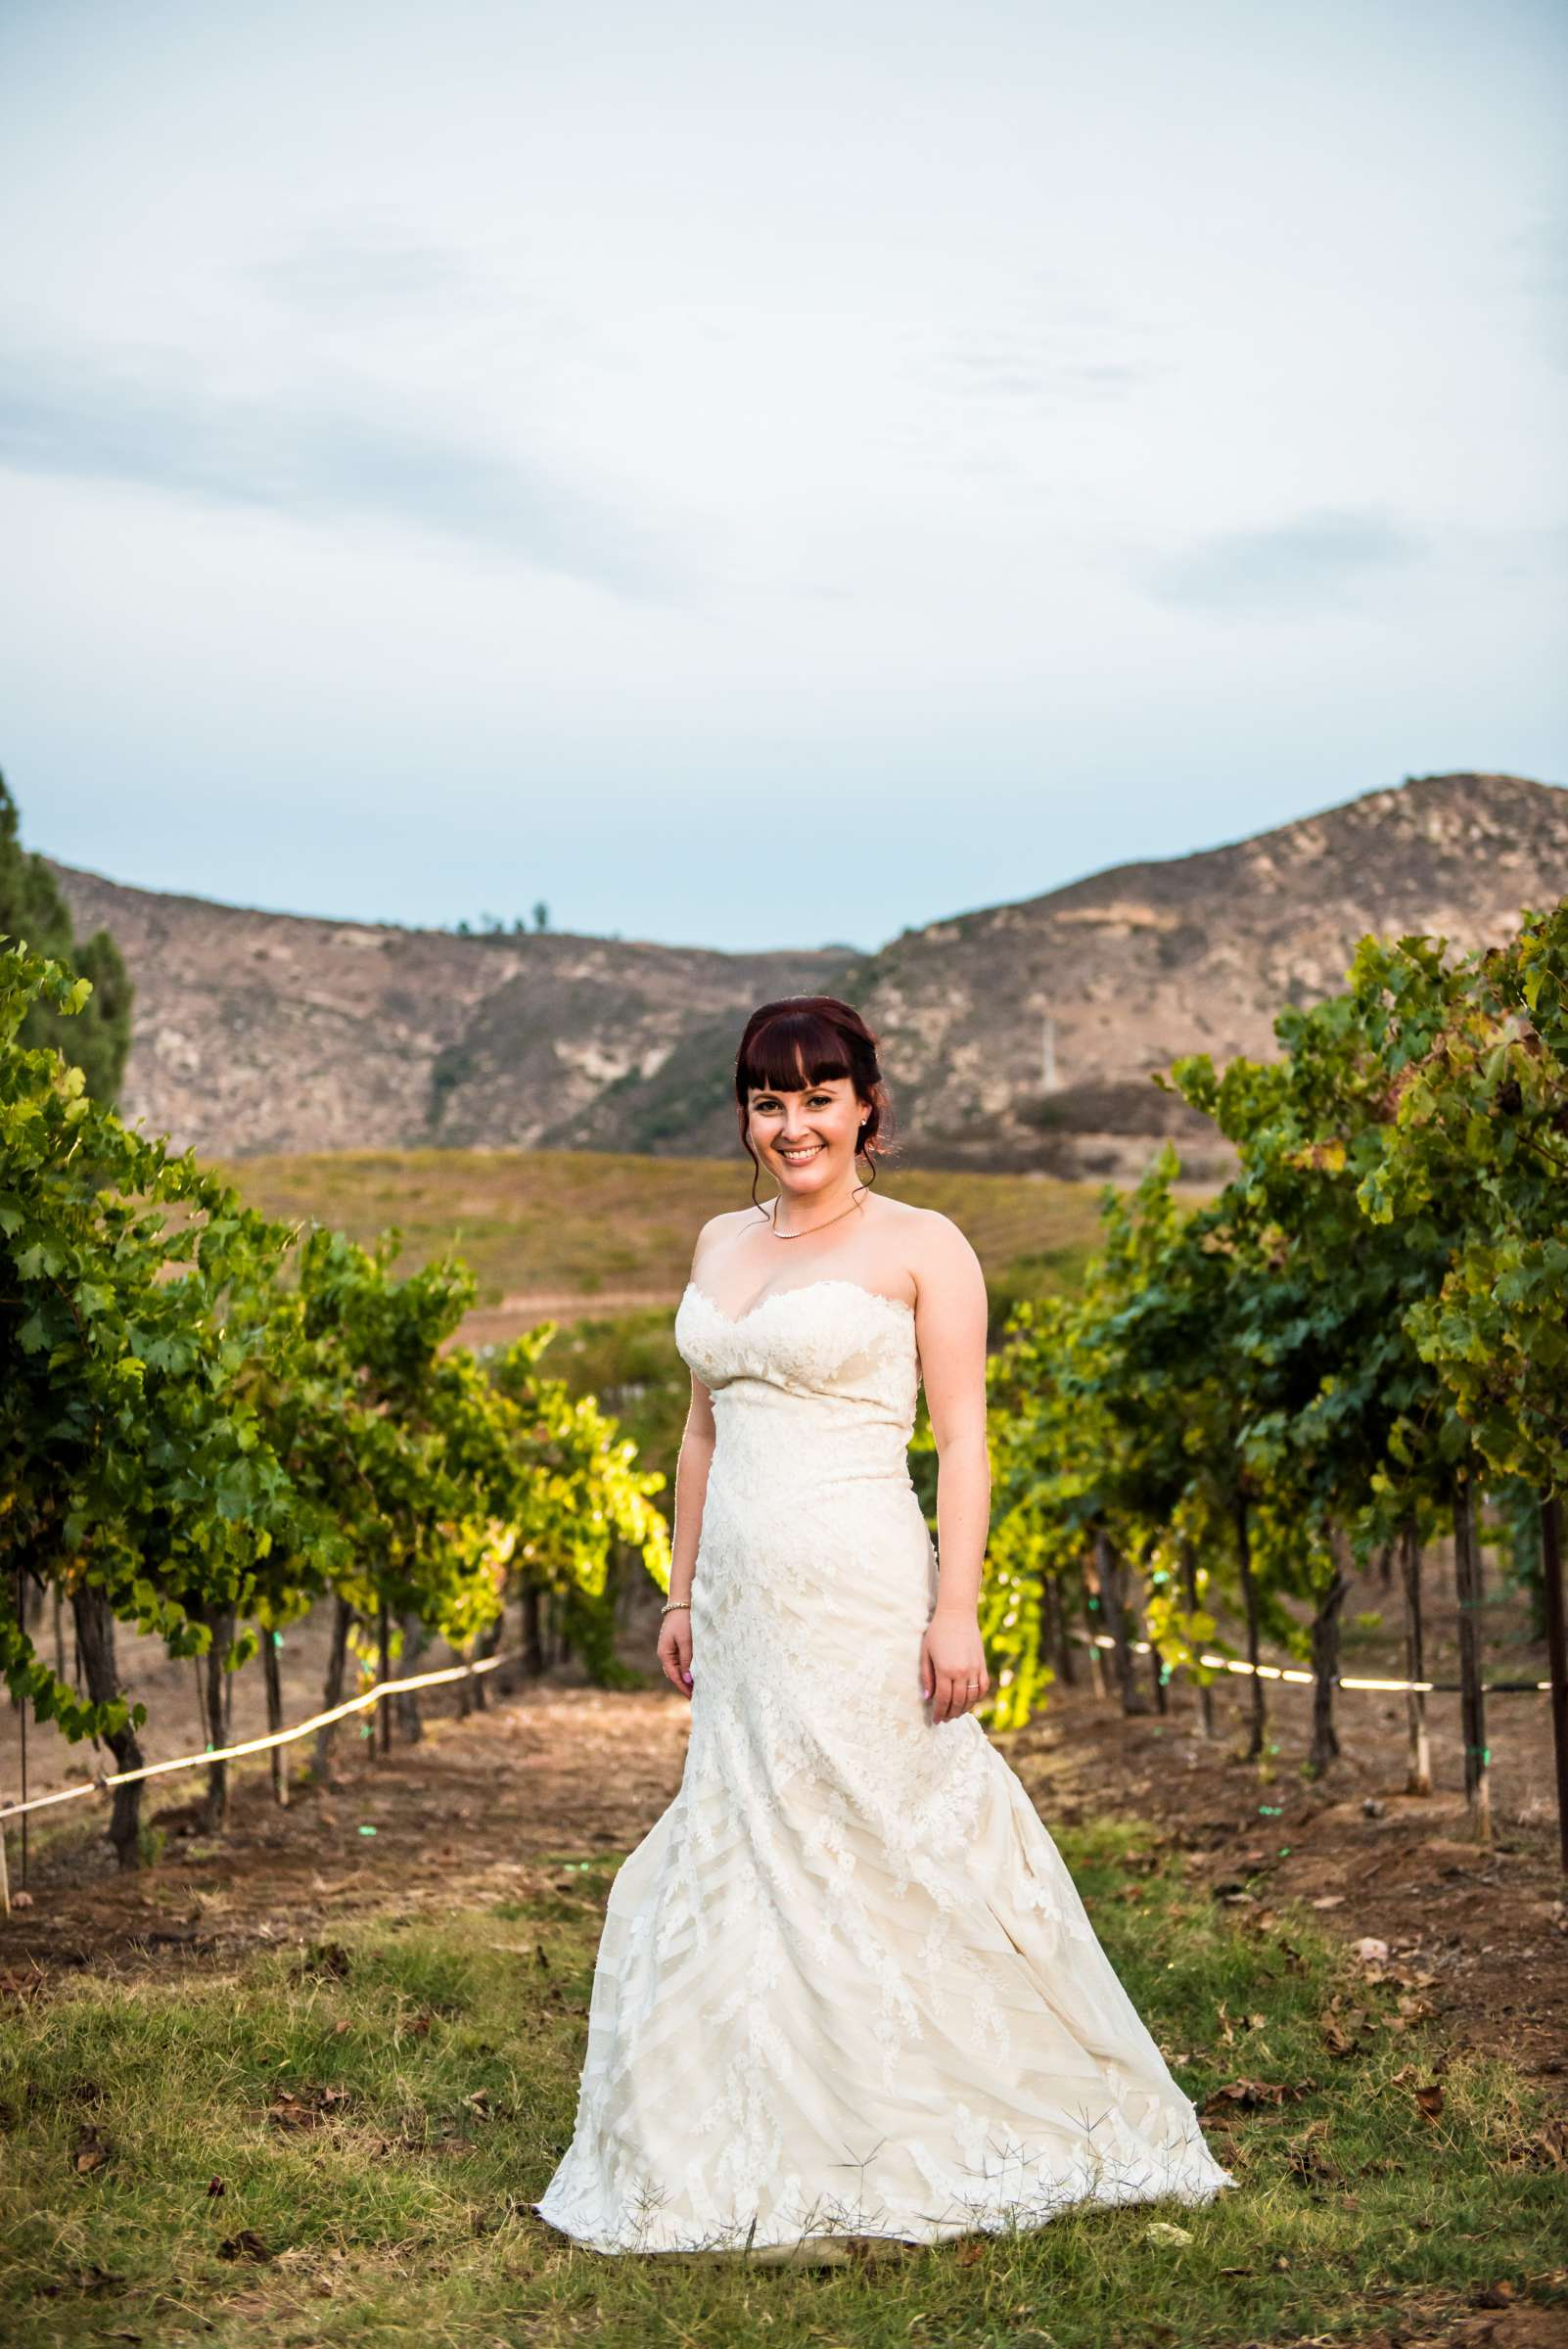 Orfila Vineyards Wedding, Tulasi and Richard Wedding Photo #11 by True Photography